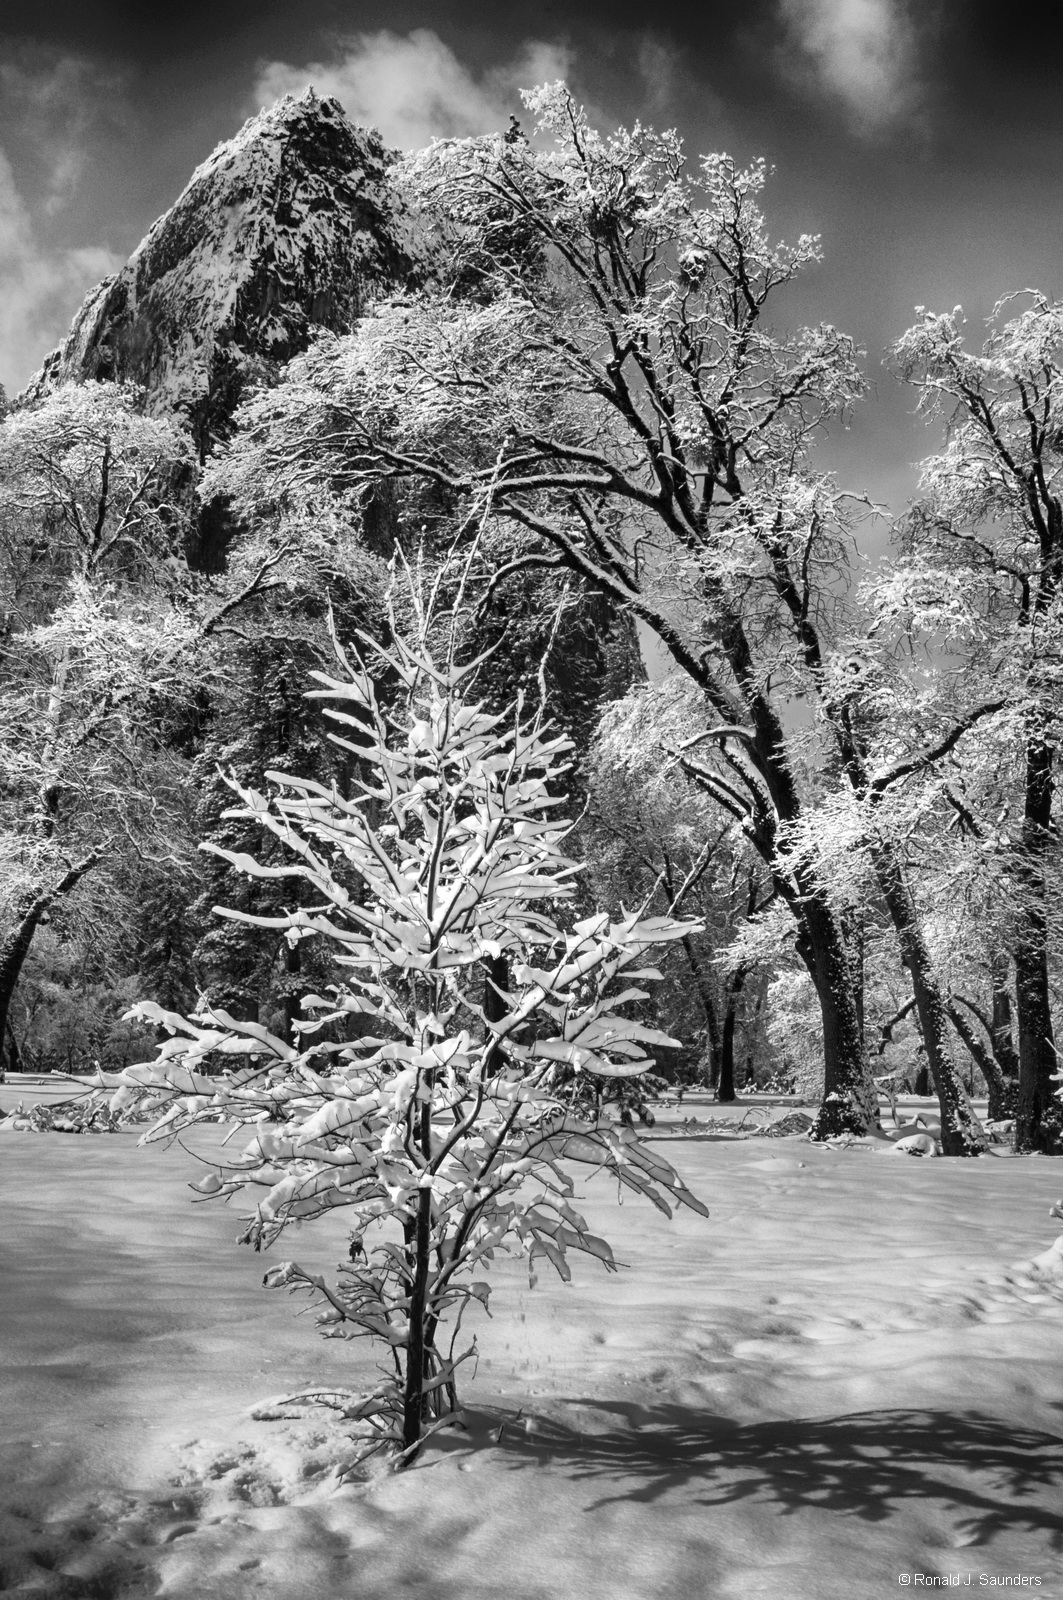 I liked the solitude and stillness of the scene in the image, with the majesty of Cathedral Rocks in the back.  The tree has...